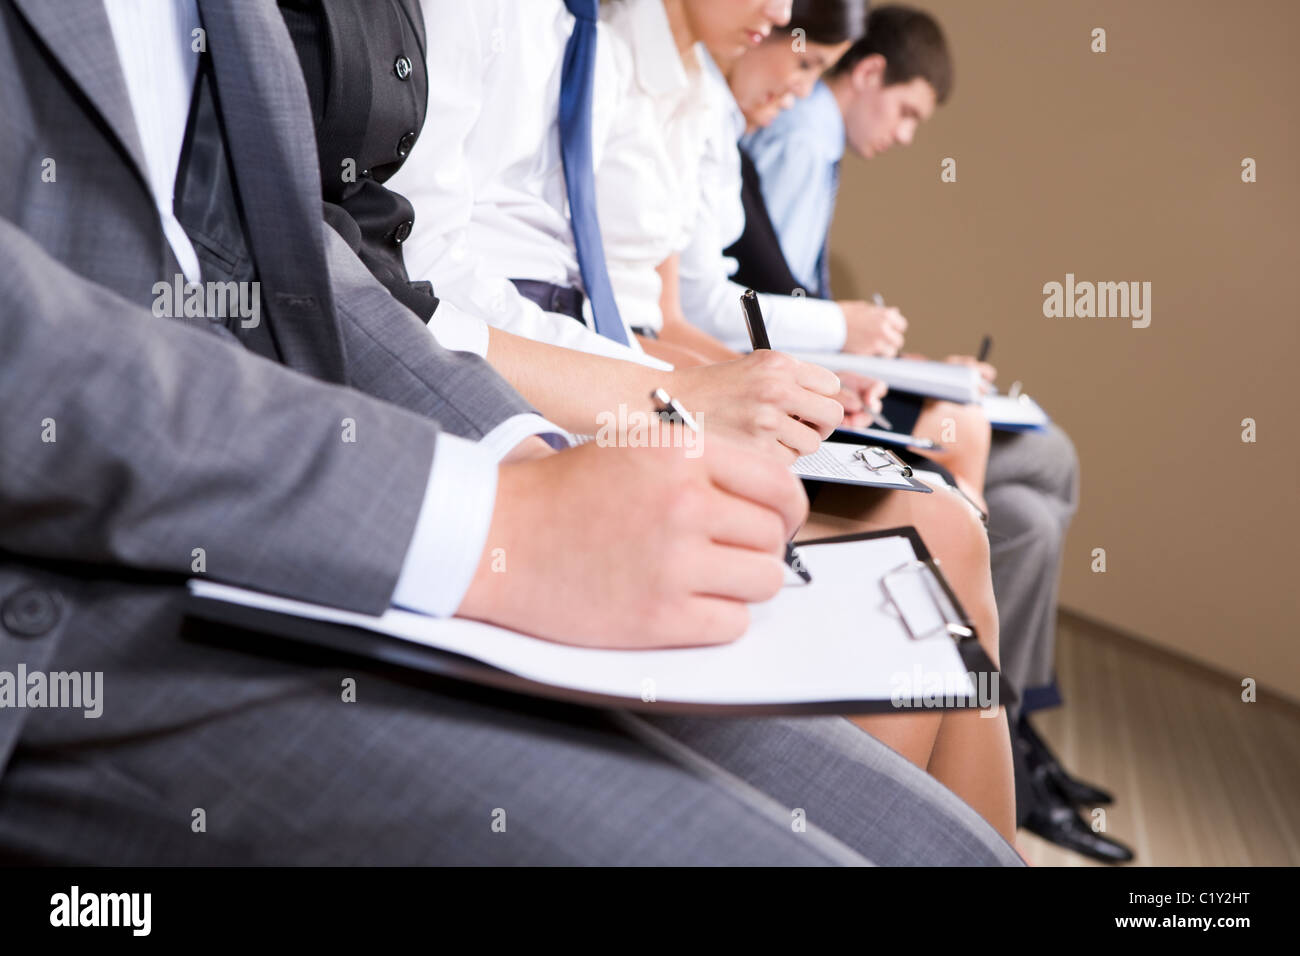 Row of business people making notes or writing business plan - Stock Image